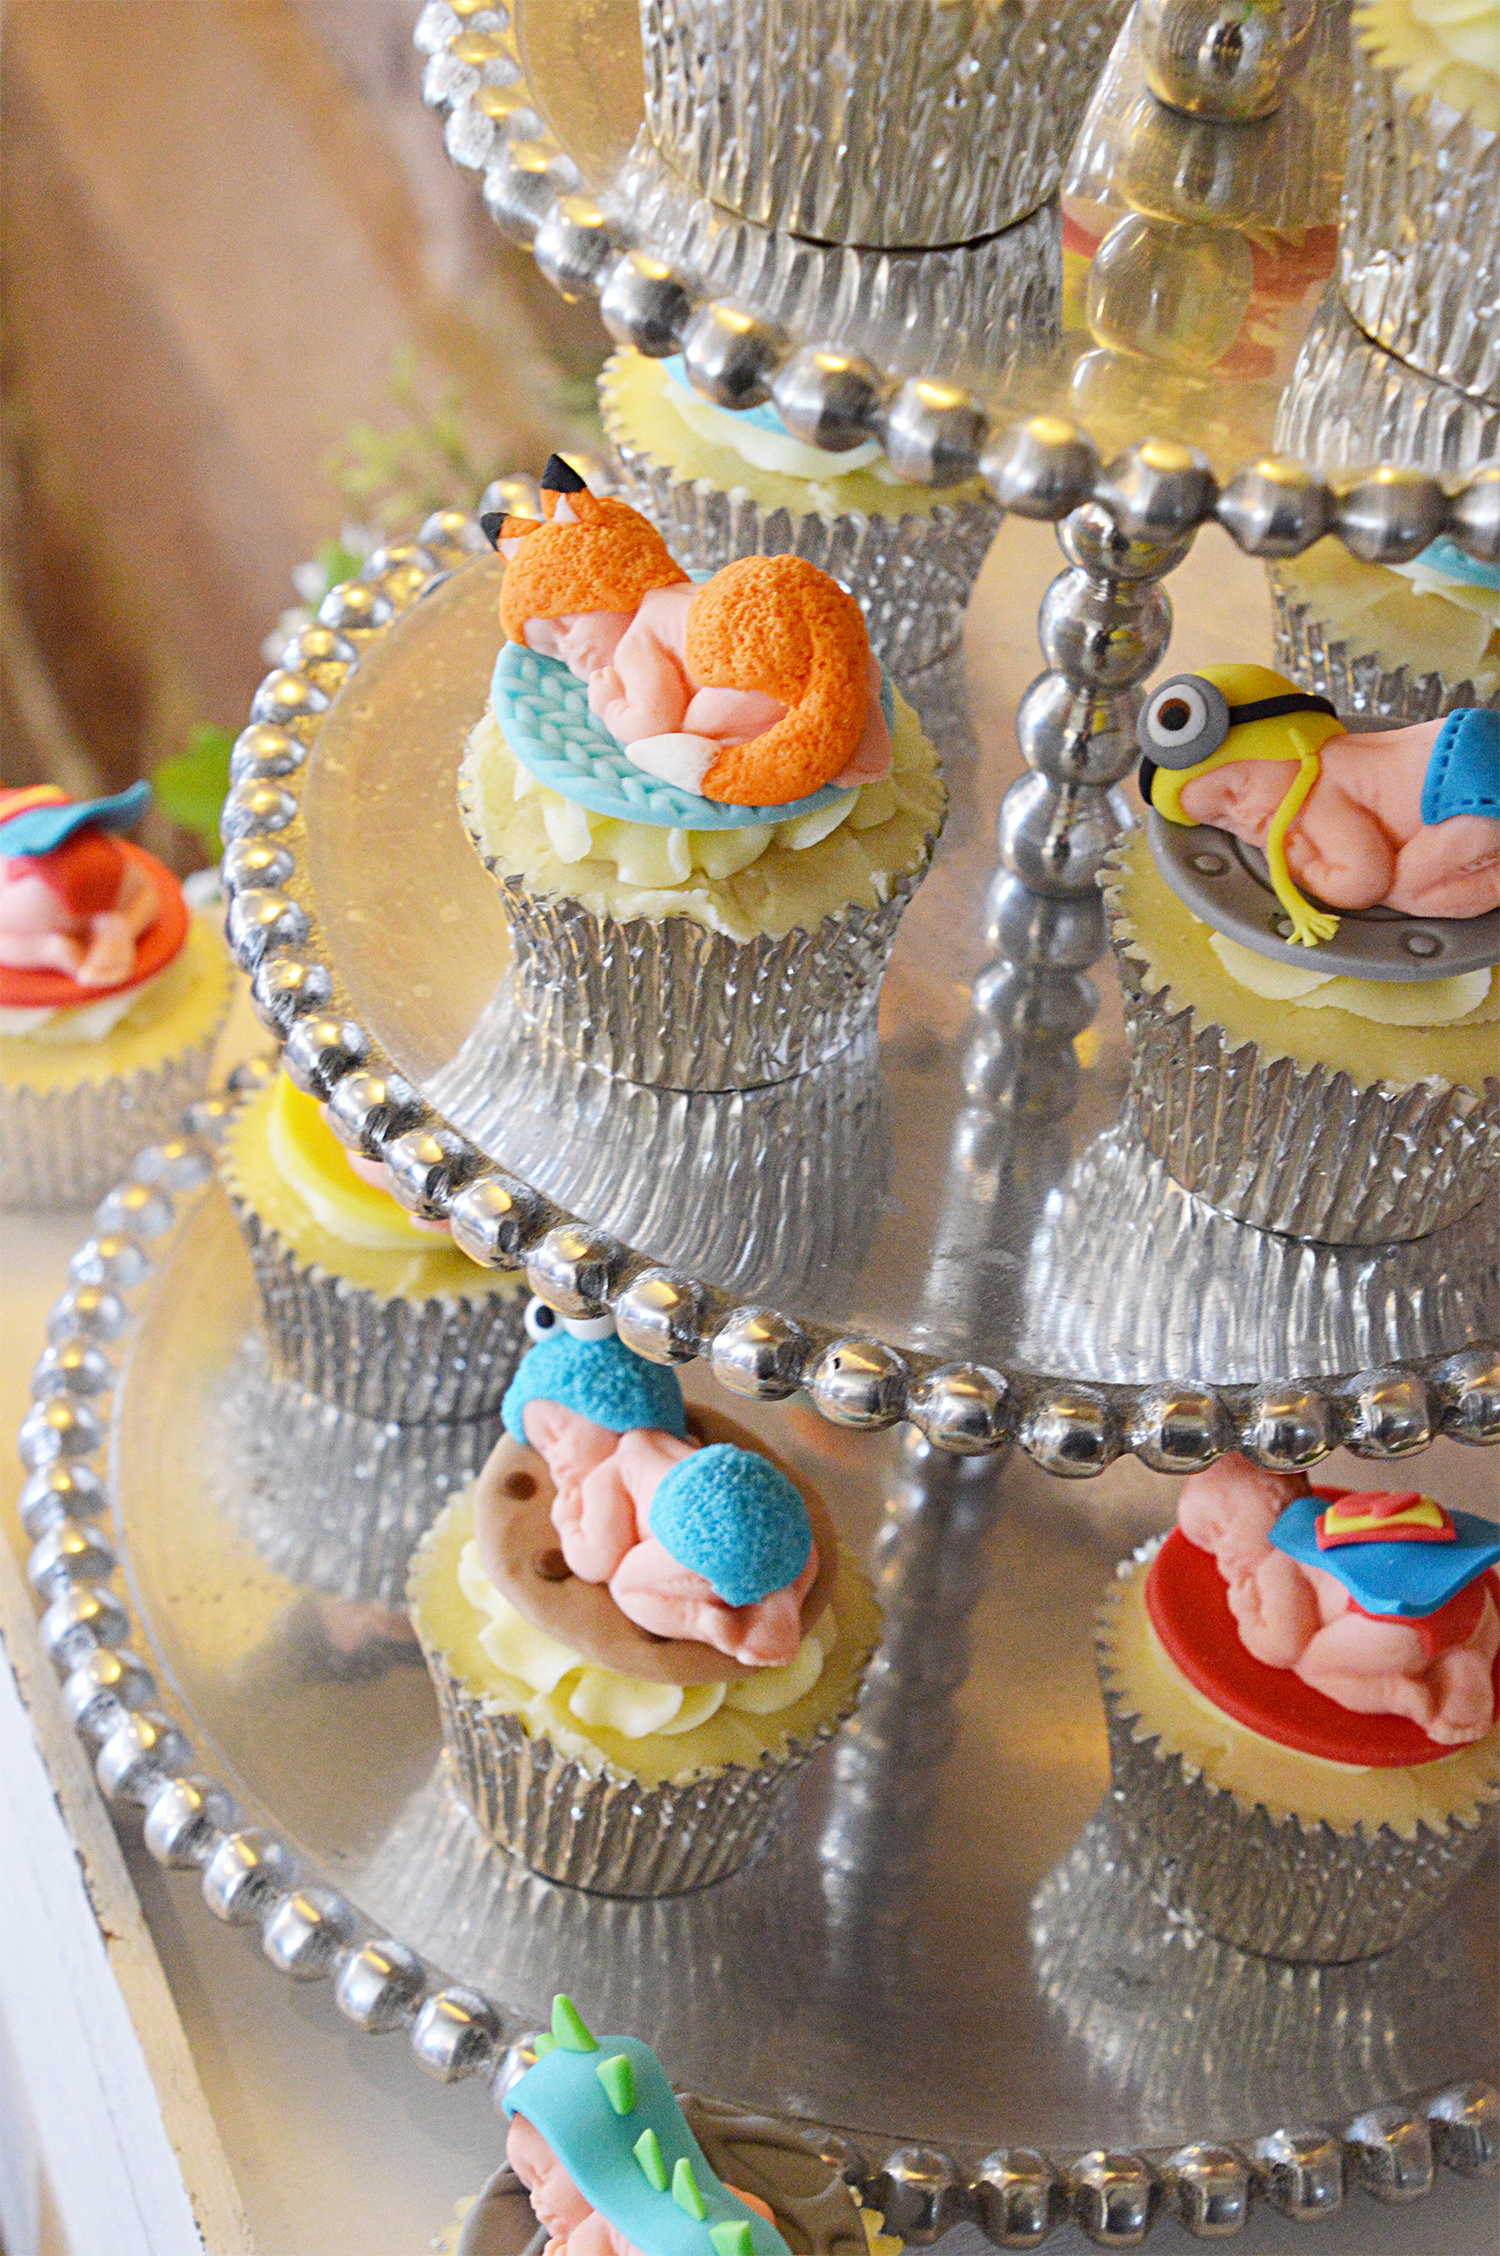 Baby Cupcakes Vanilla Iced Cakes Chorley Baby Shower Beeston Manor Events